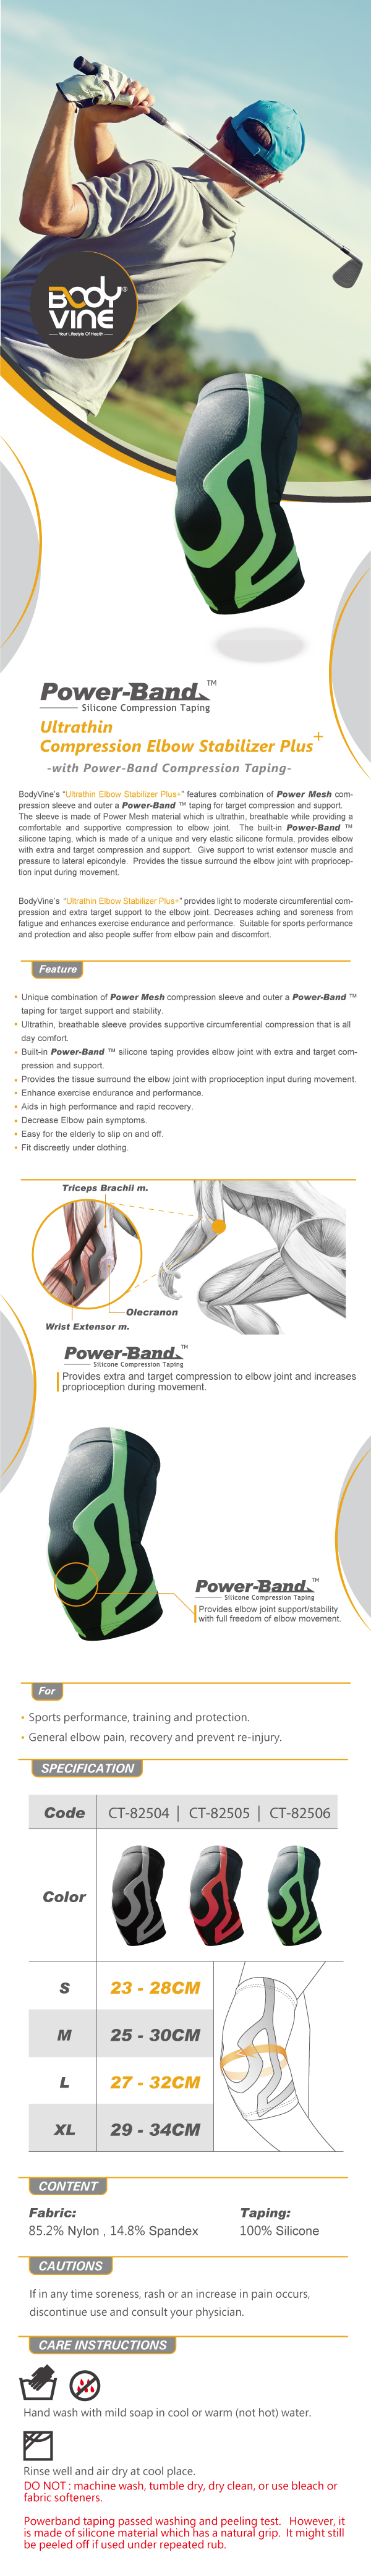 Ultrathin-Compression-Elbow-Stabilizer-Plus_Power-Band-Compression-Taping